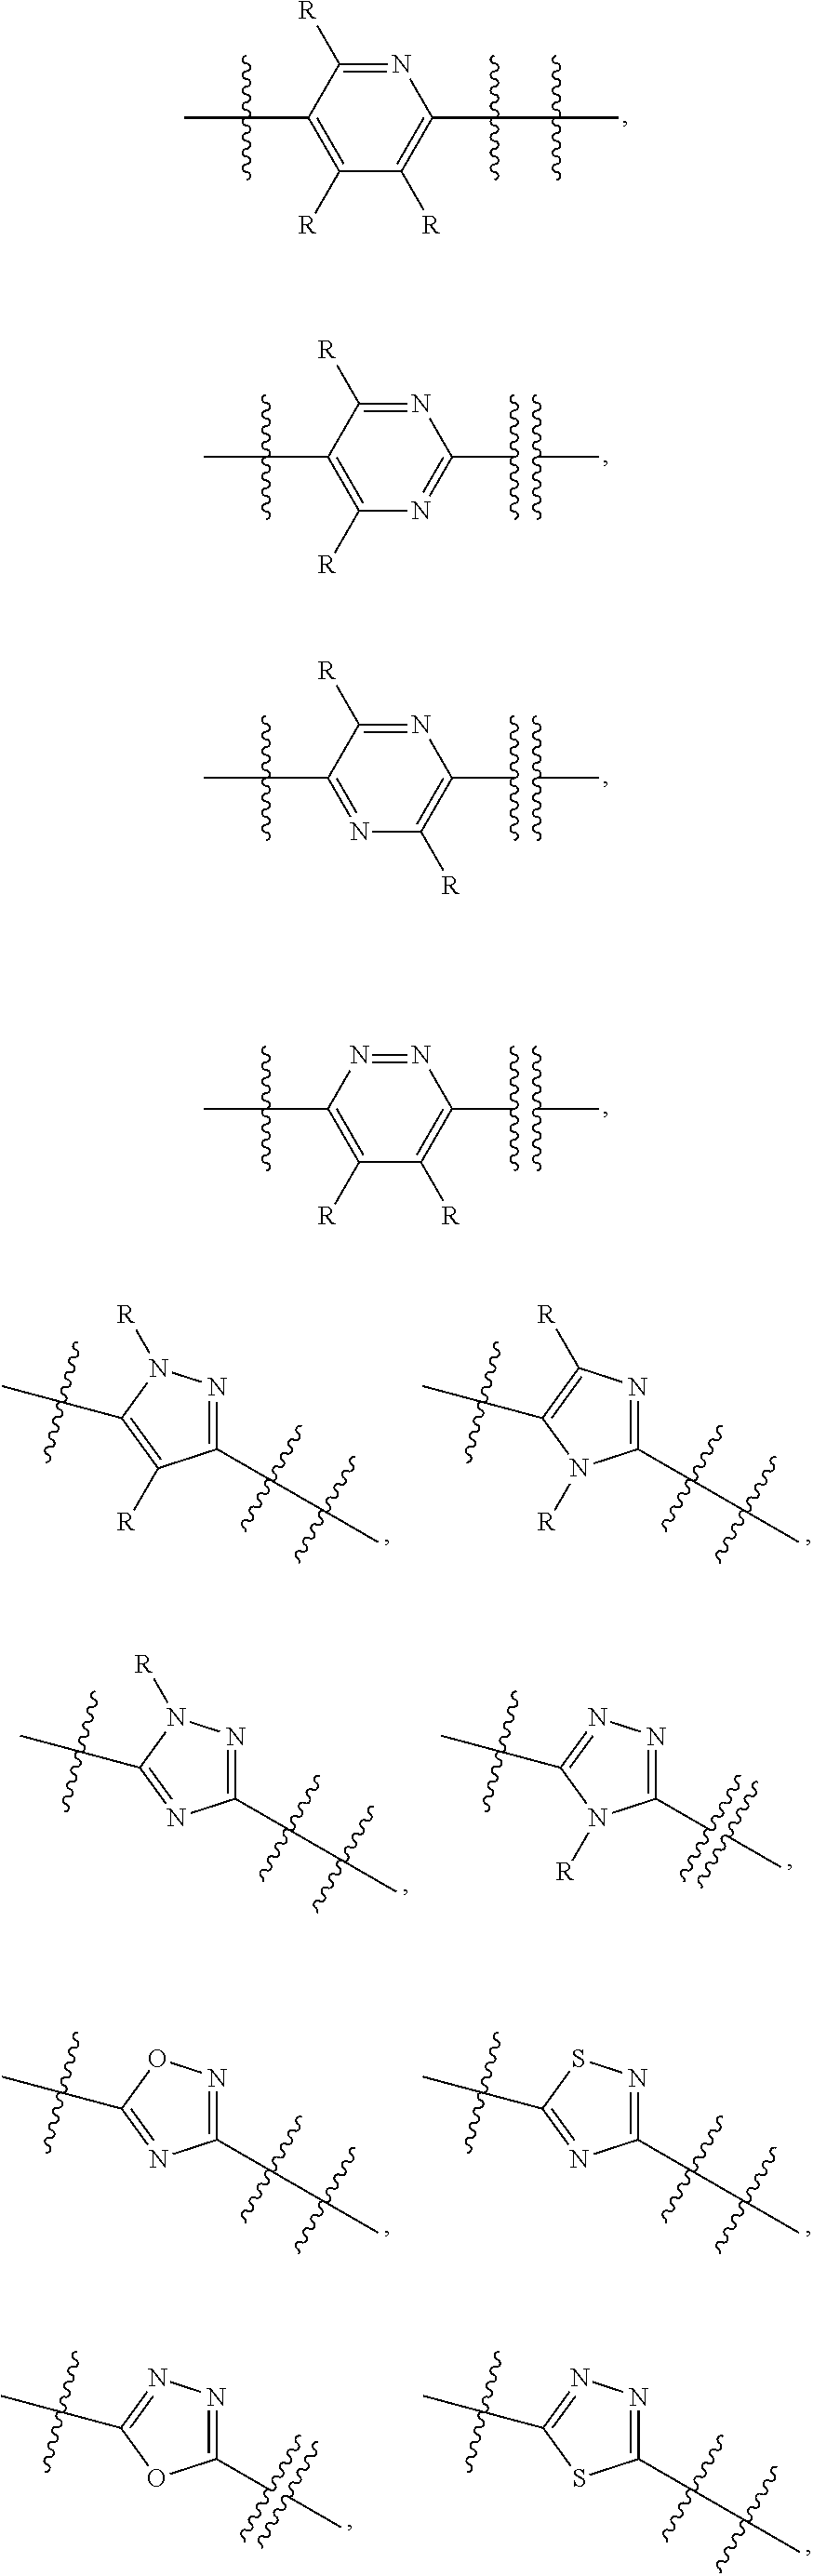 US9169250B2 - Compounds modulating c-fms and/or c-kit